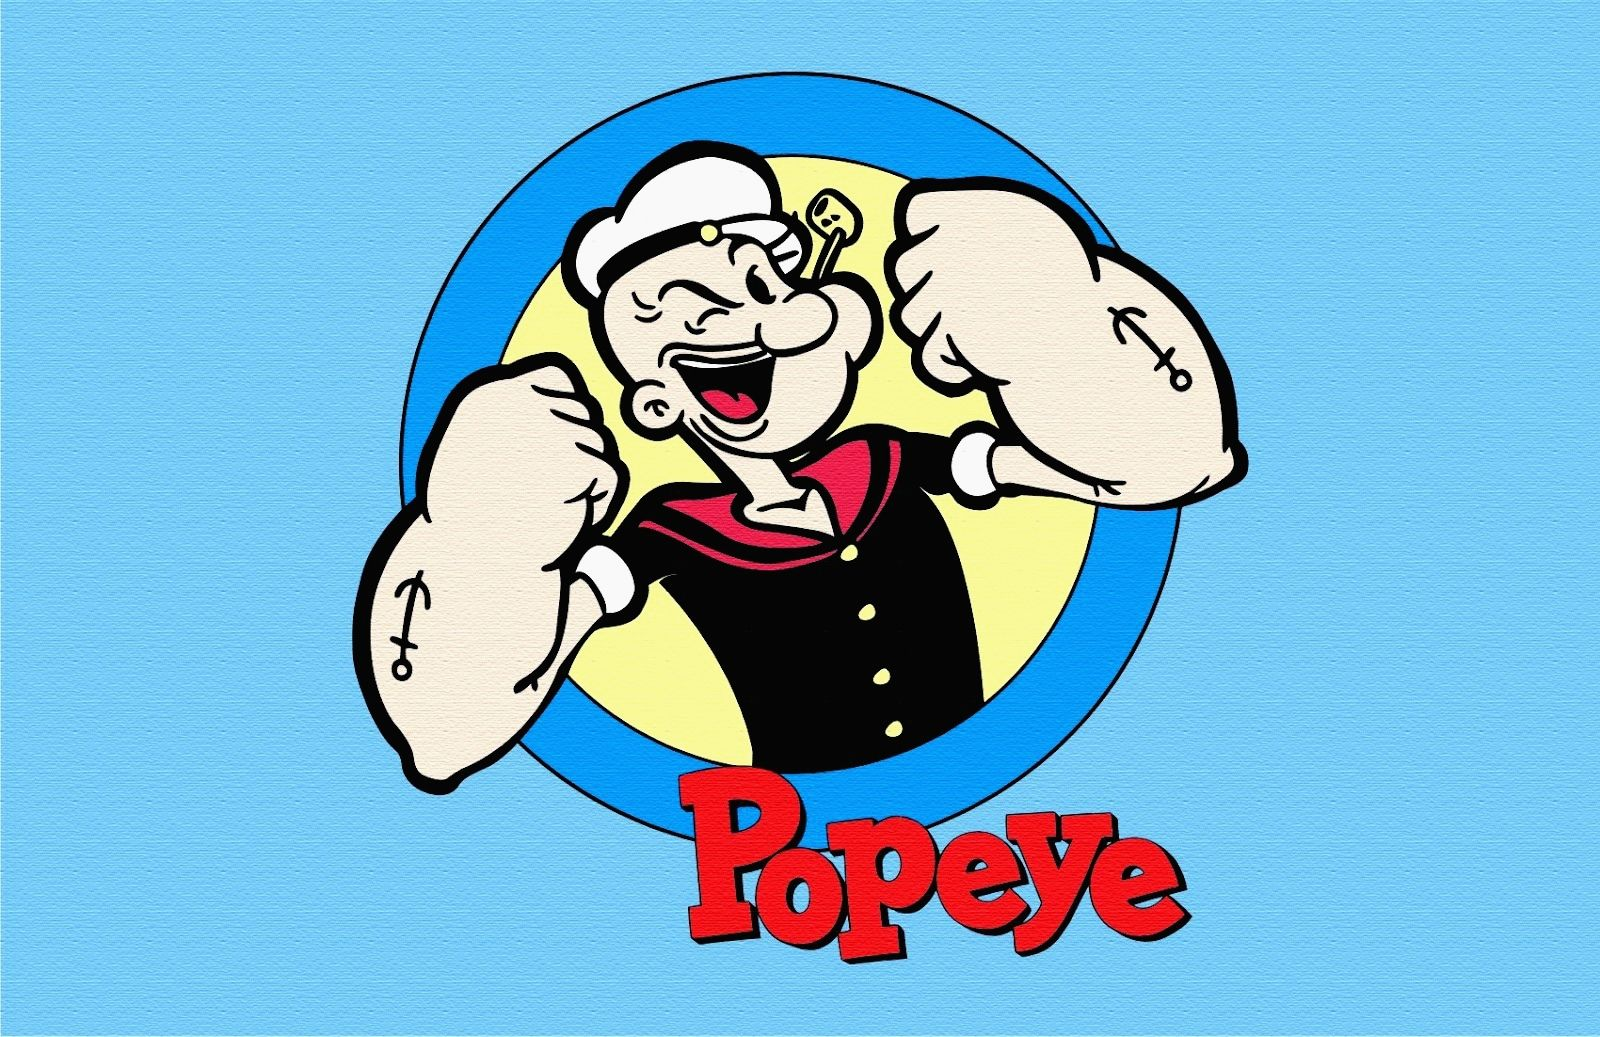 Pics Popeye the Sailor Man For Android Image Wallpaper Download 1600x1037